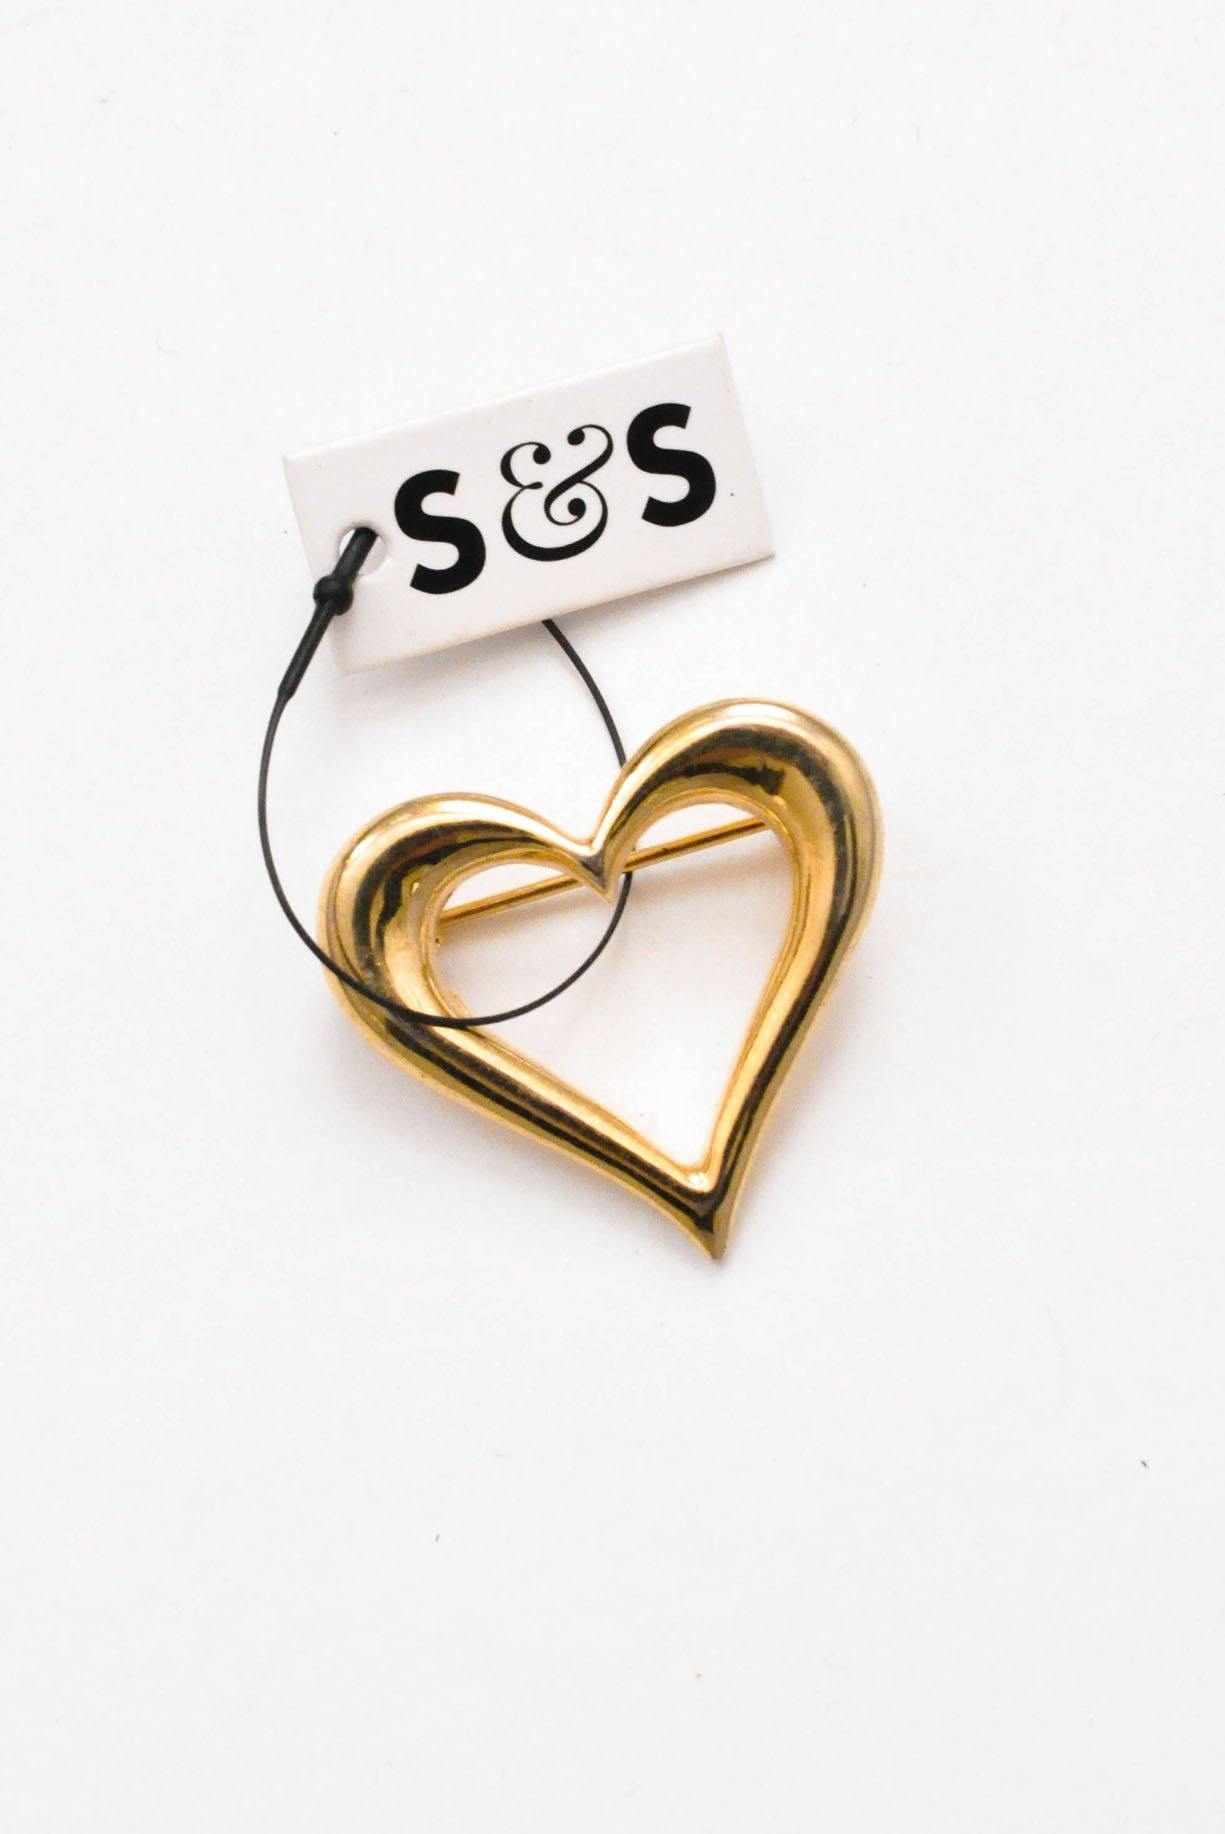 Mini Heart Brooch - Sweet & Spark